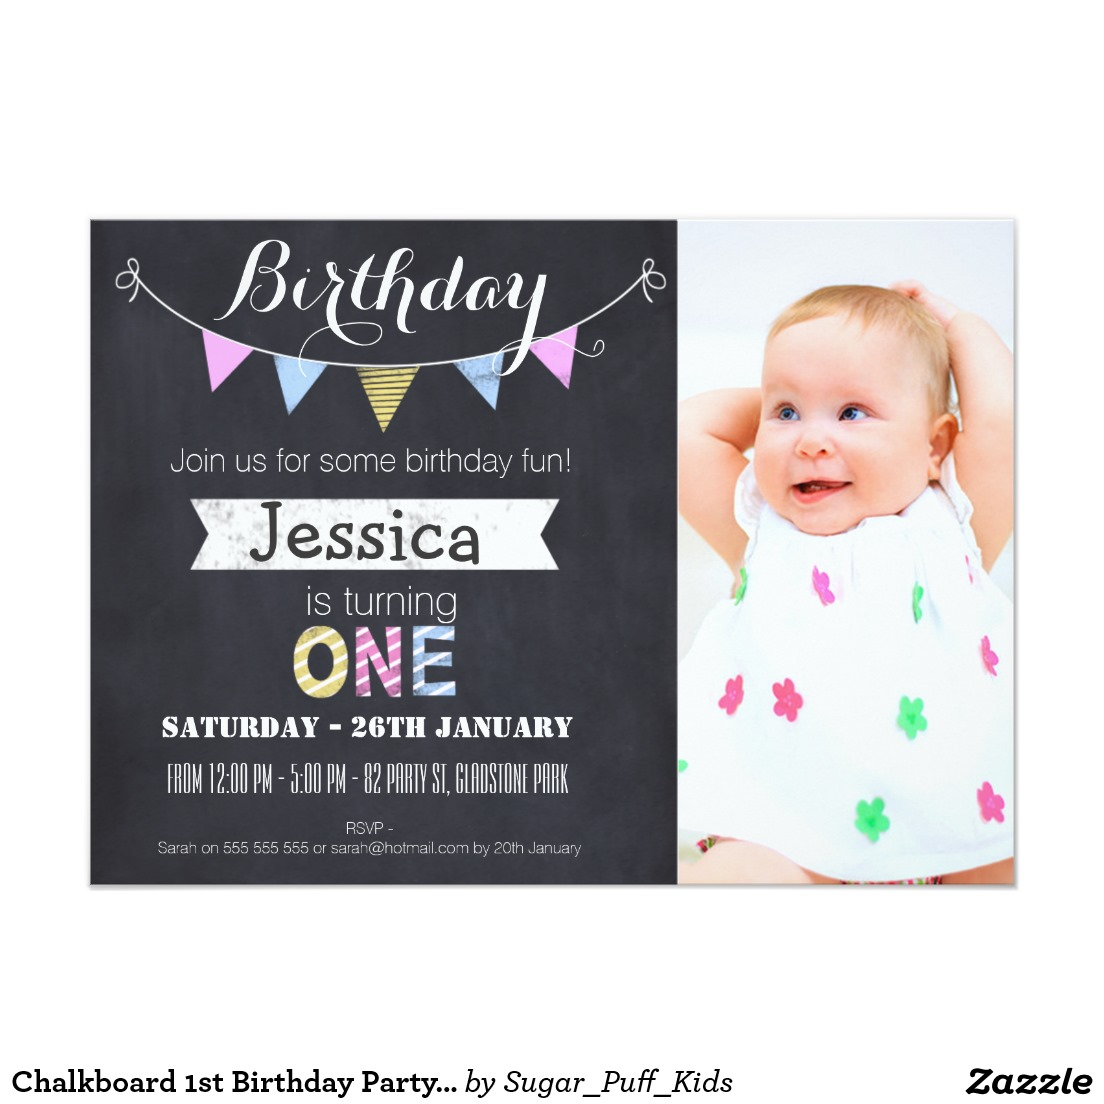 1st birthday photo invitations ; first-birthday-party-invitations-girls-1st-birthday-invitation-chevron-chalkboard-cards-invite-baby-girl-with-photo-design-ideas